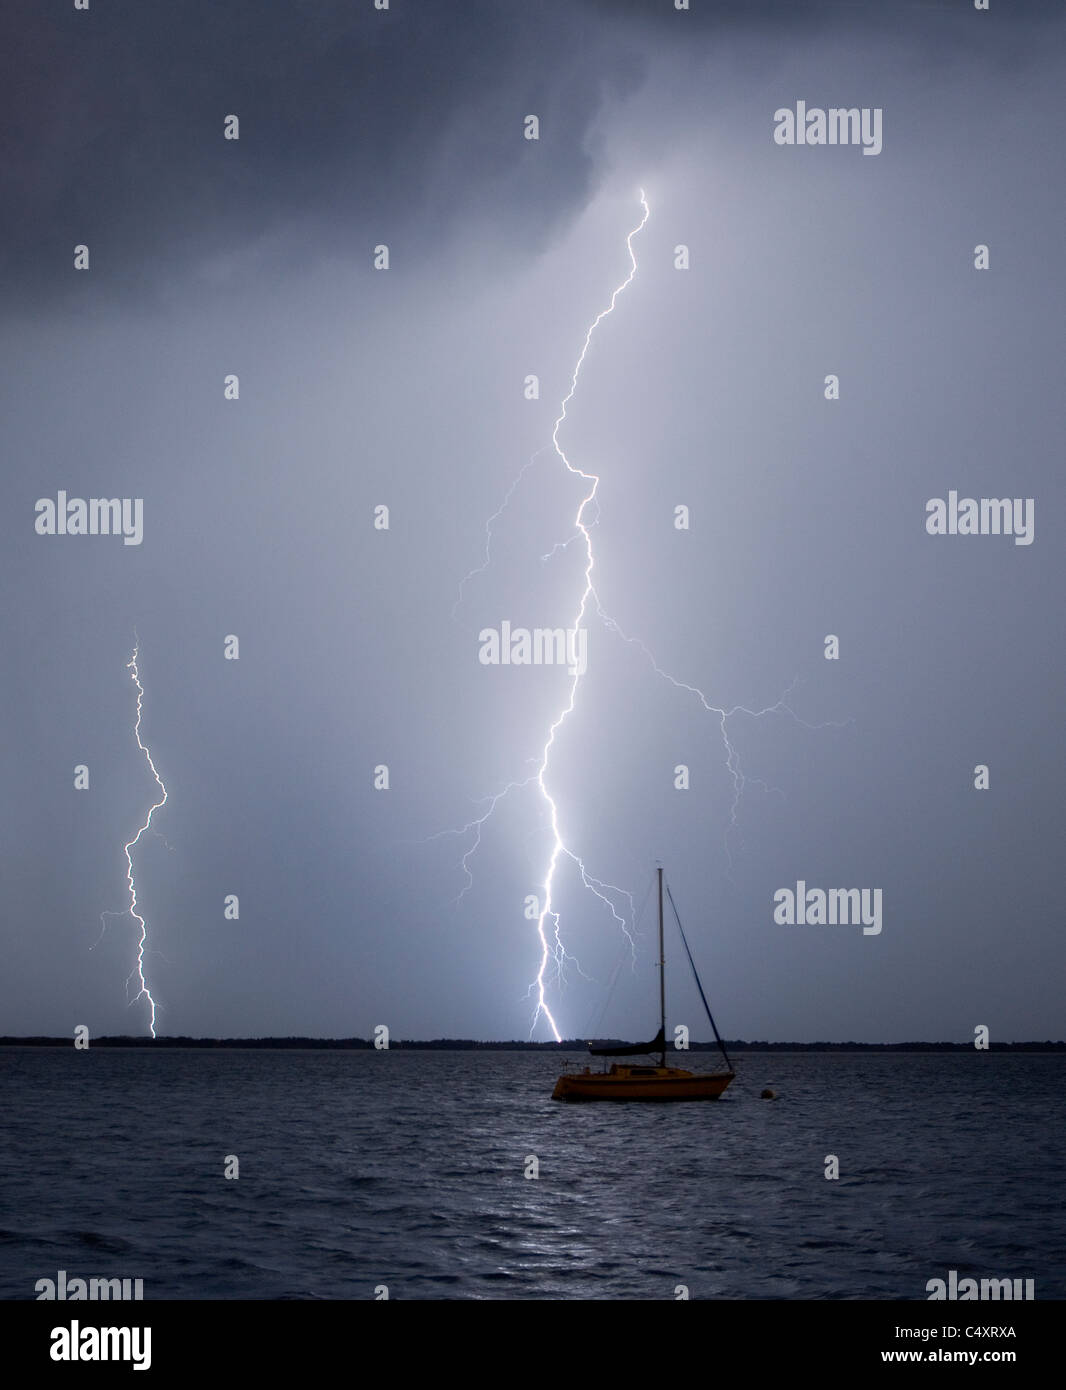 A lightning strike near a moored sailboat - Stock Image